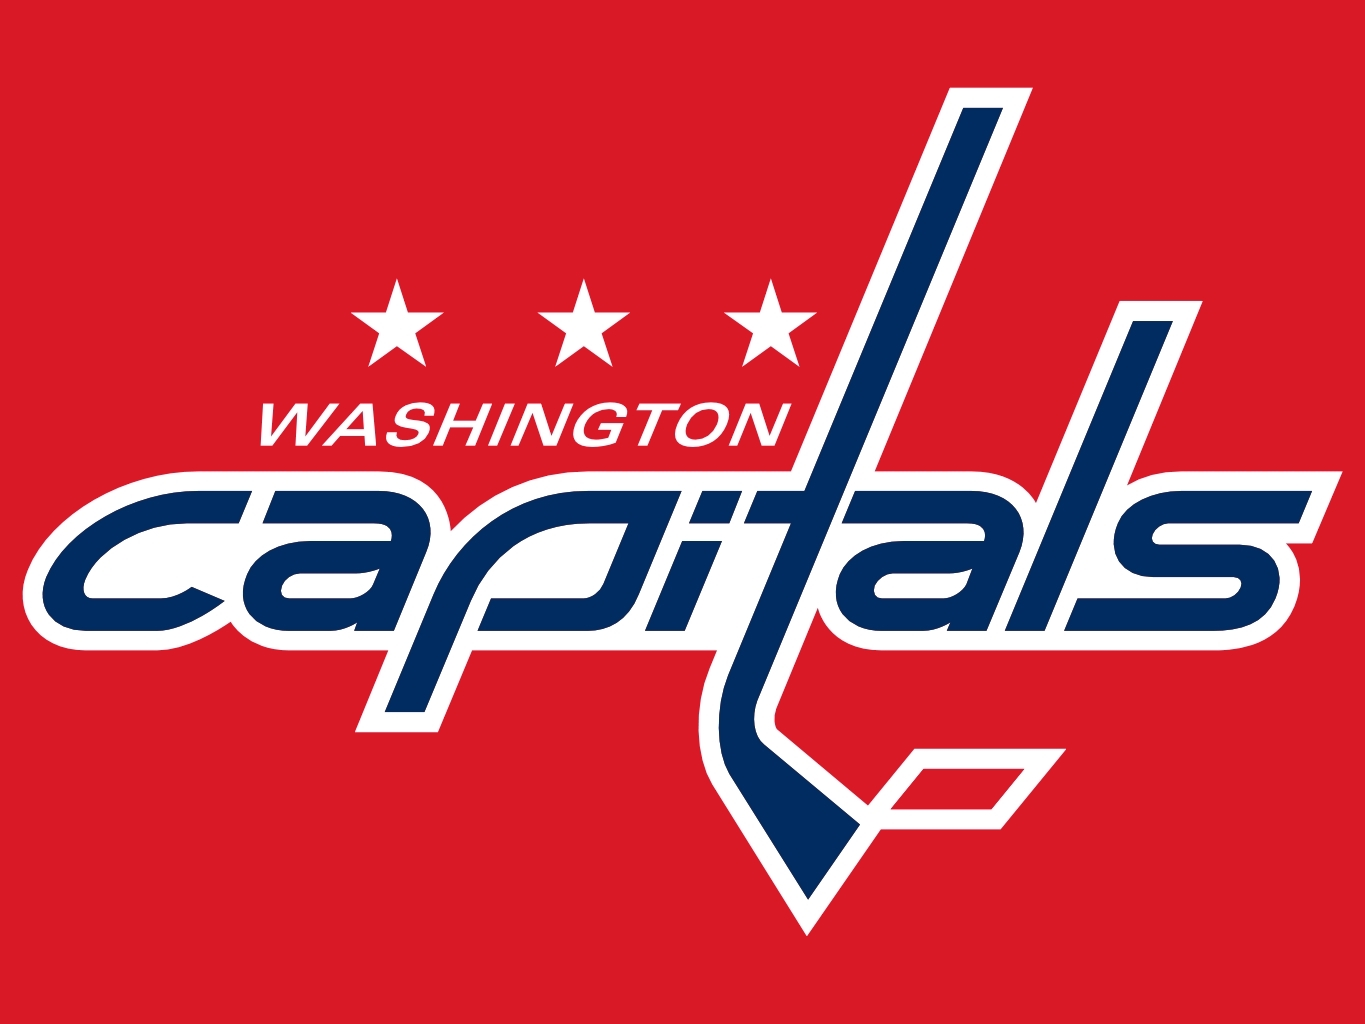 Washington Capitals NHL Hockey Logos 1365x1024